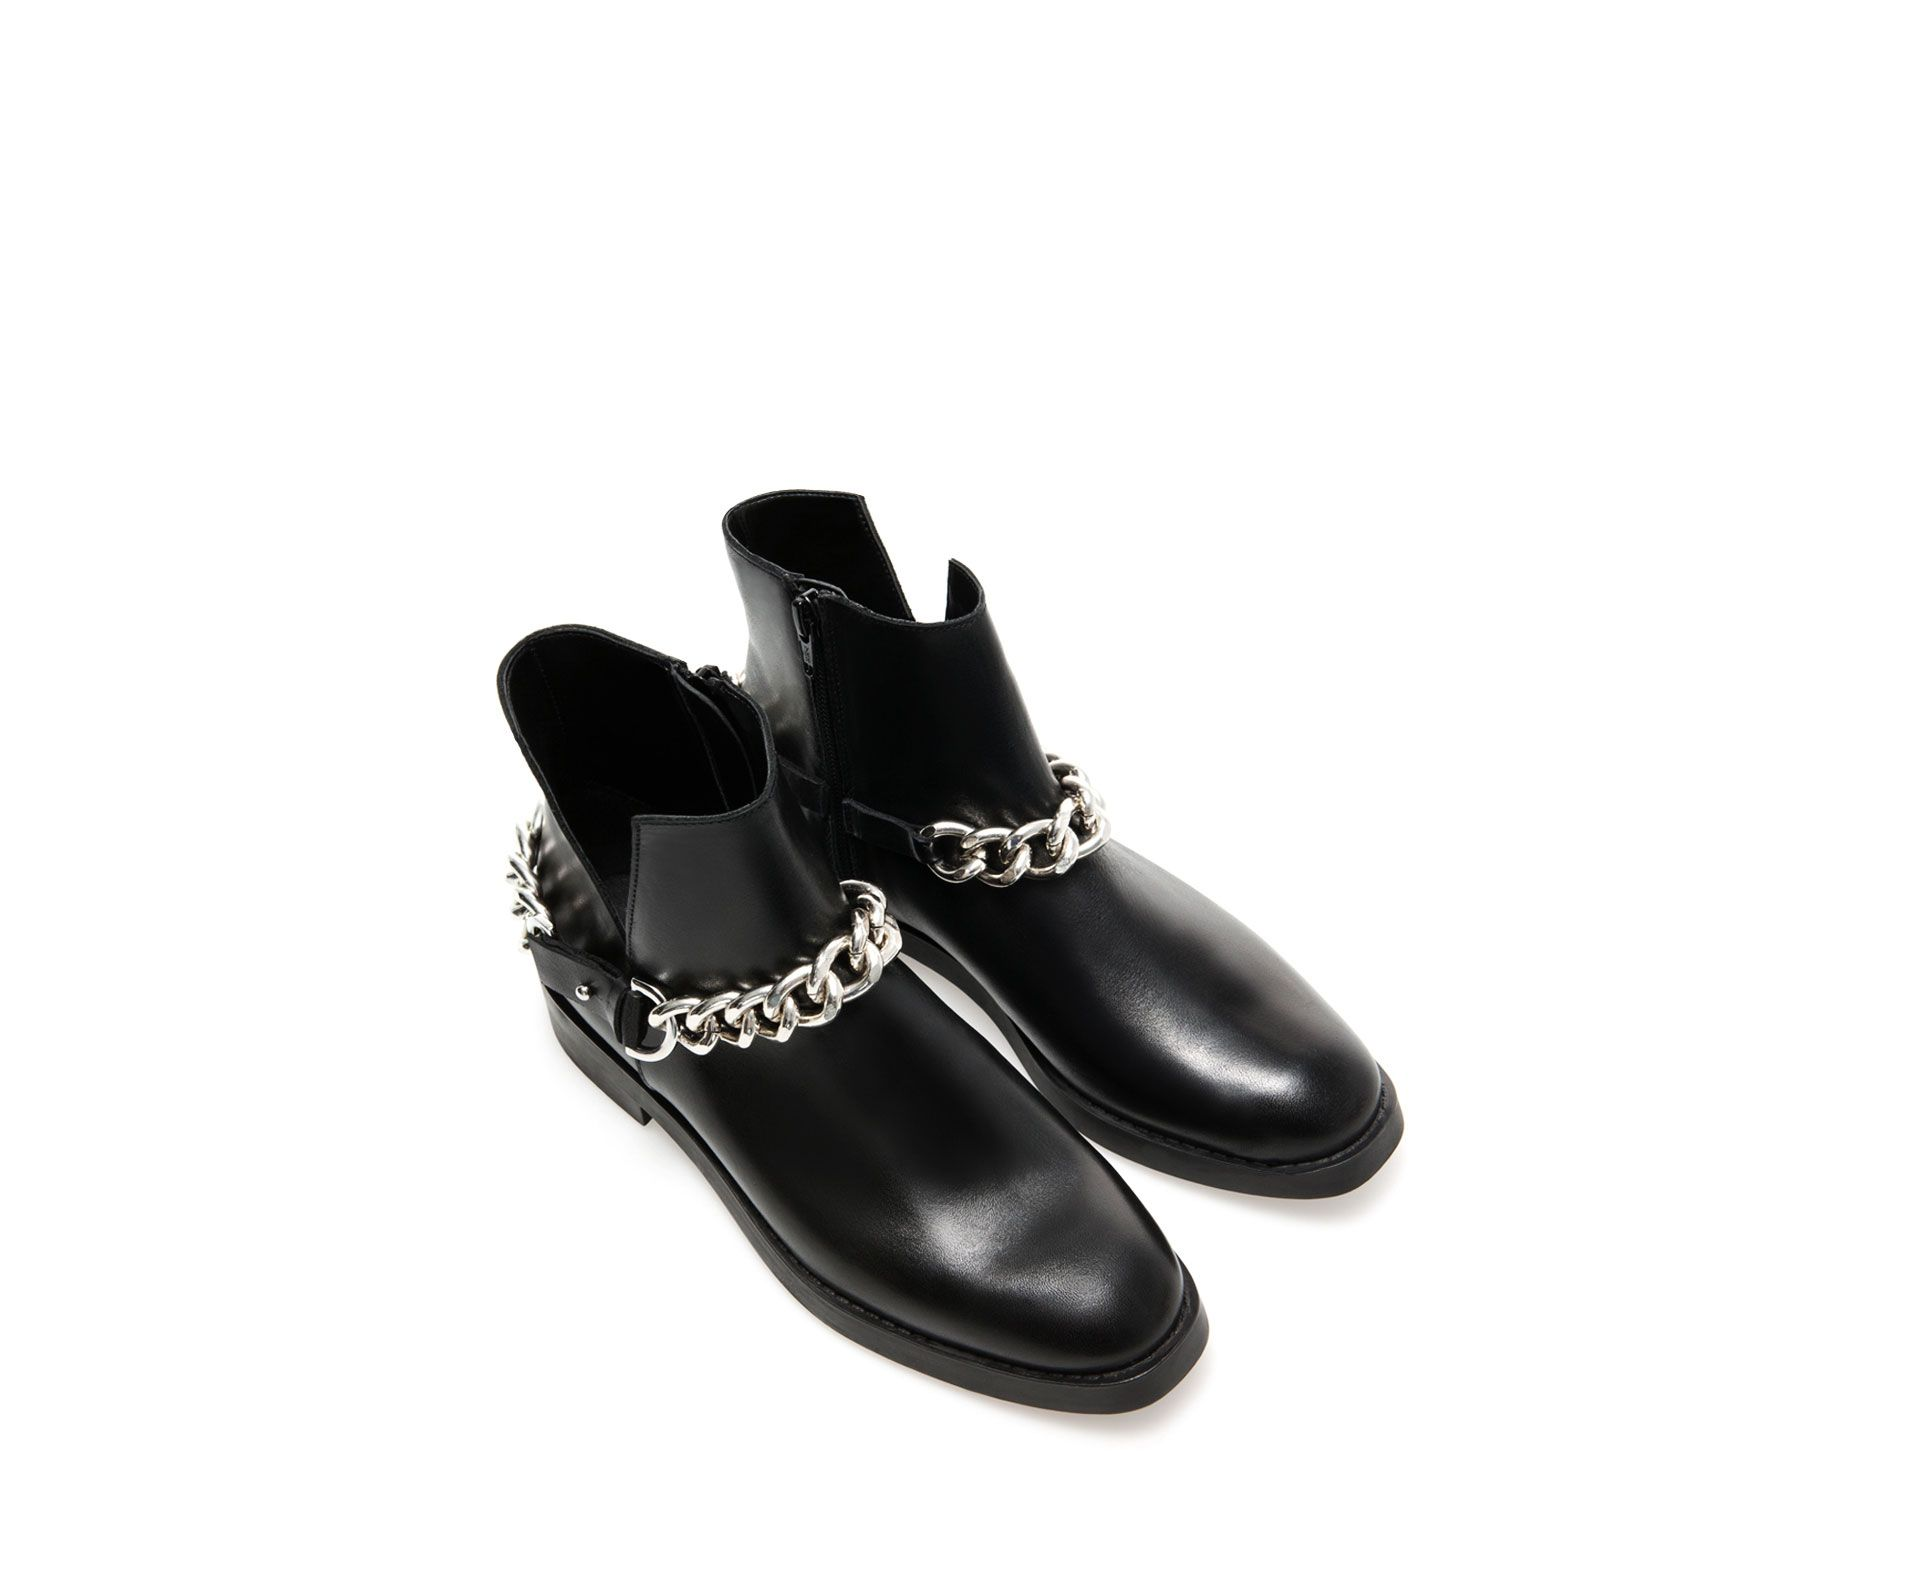 faed413a1dc ZARA - NEW COLLECTION - FLAT LEATHER ANKLE BOOT WITH CHAIN DETAIL ...